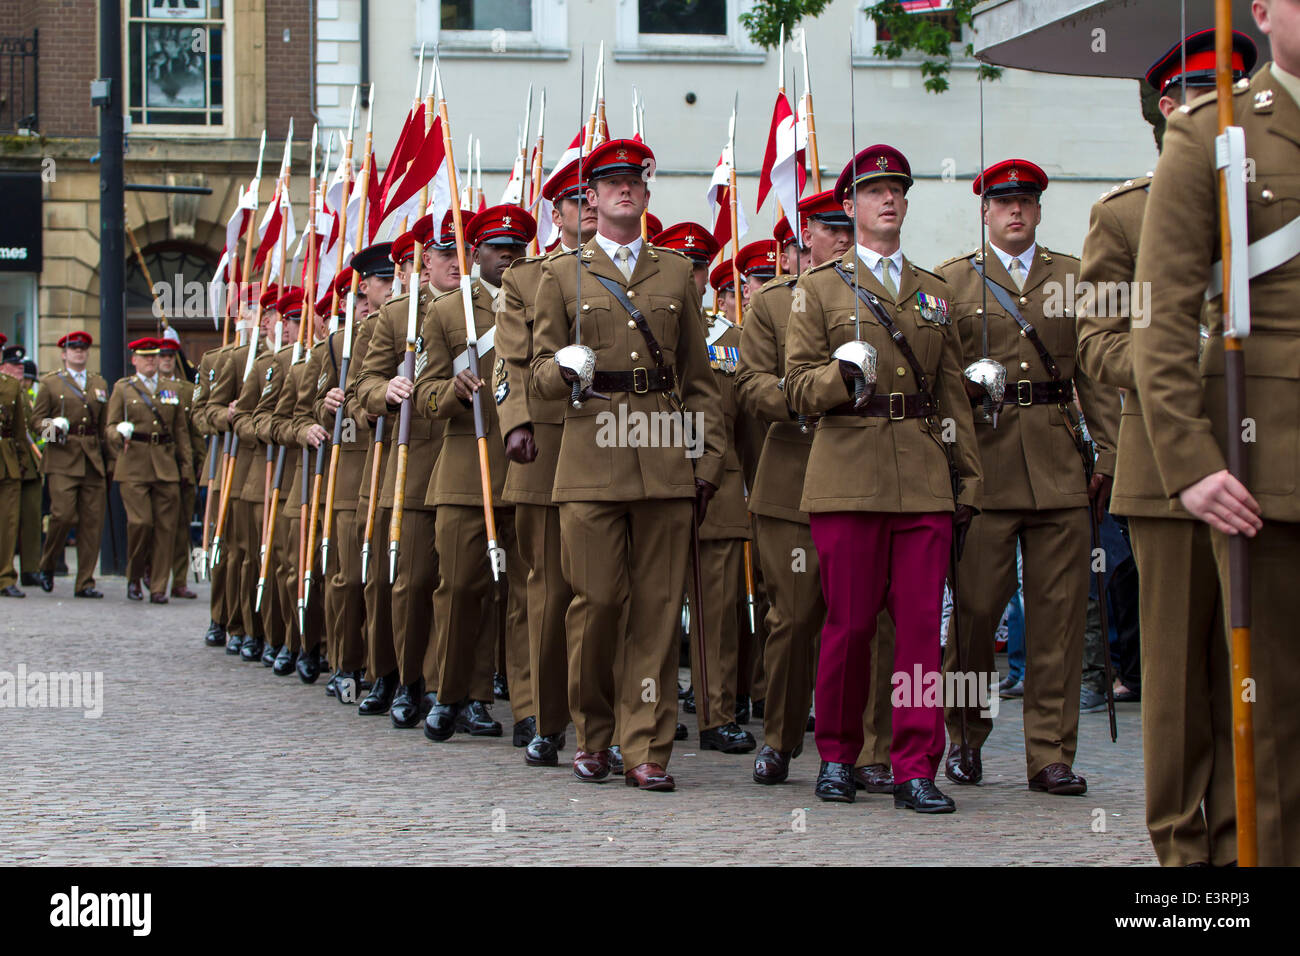 Northampton, UK. 28th June, 2014. The 9th/12th Royal Lancers proudly parade through Northampton town centre as the - Stock Image